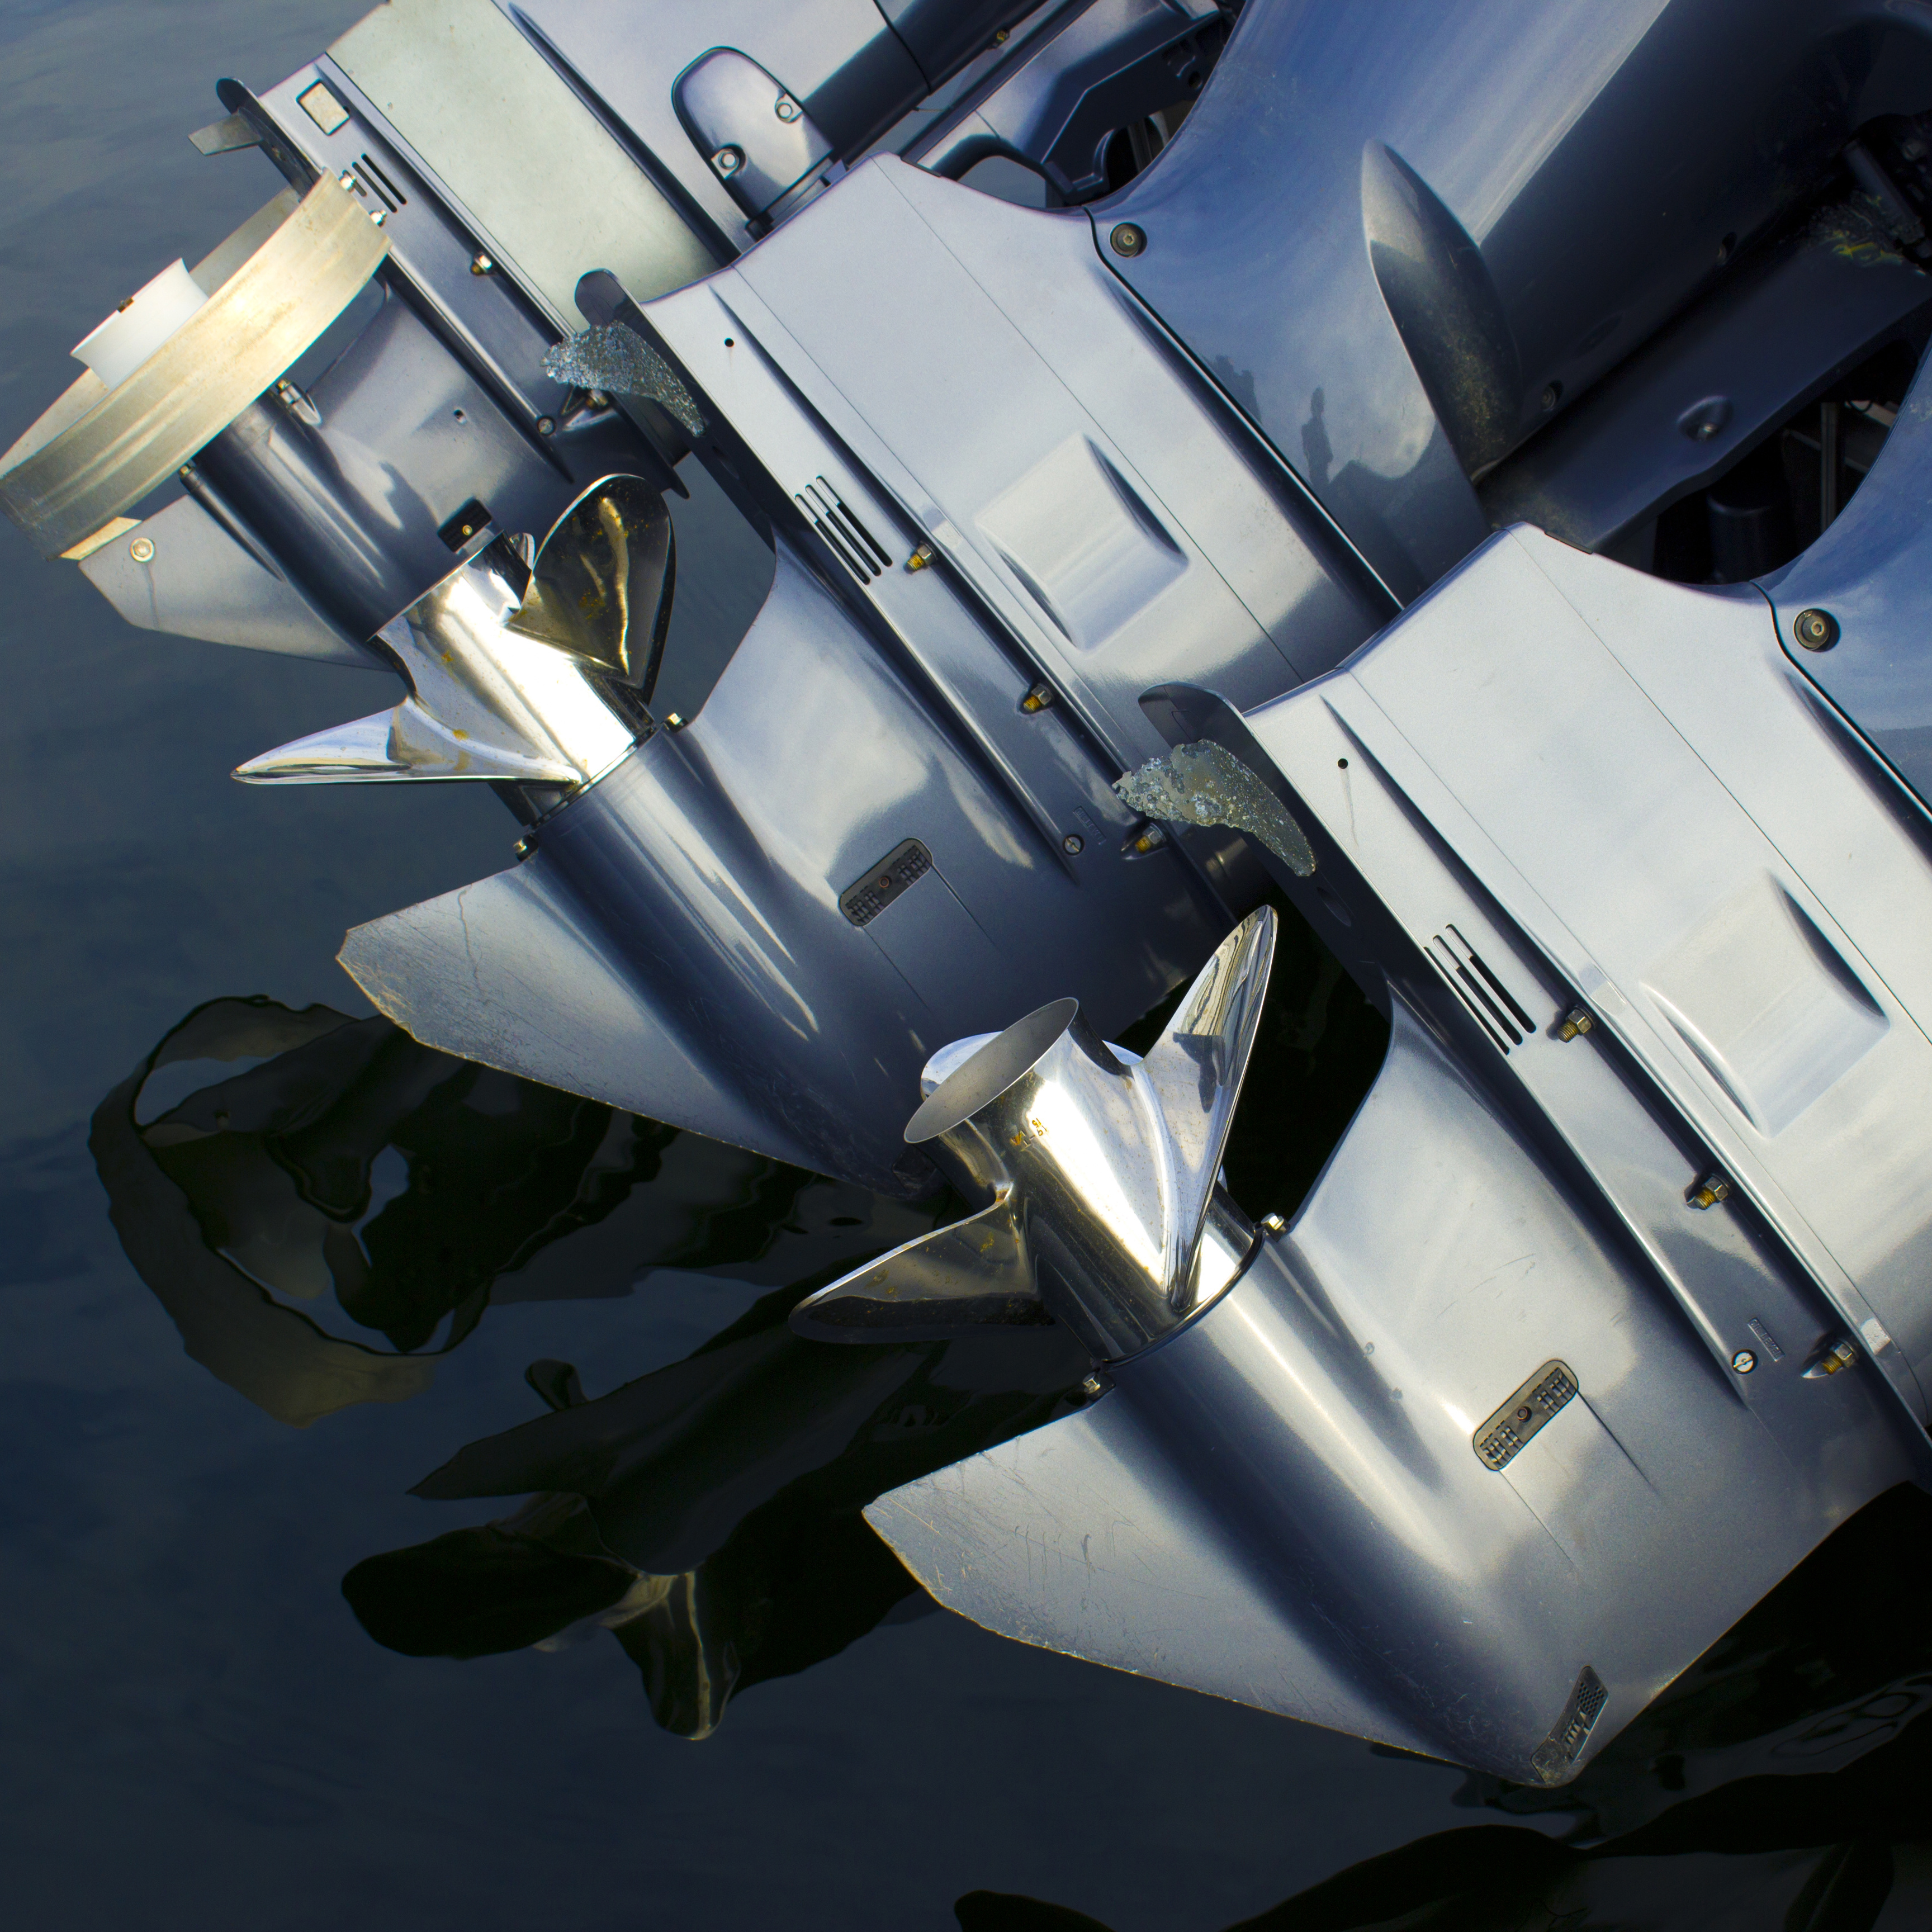 Three outboard motors lined up